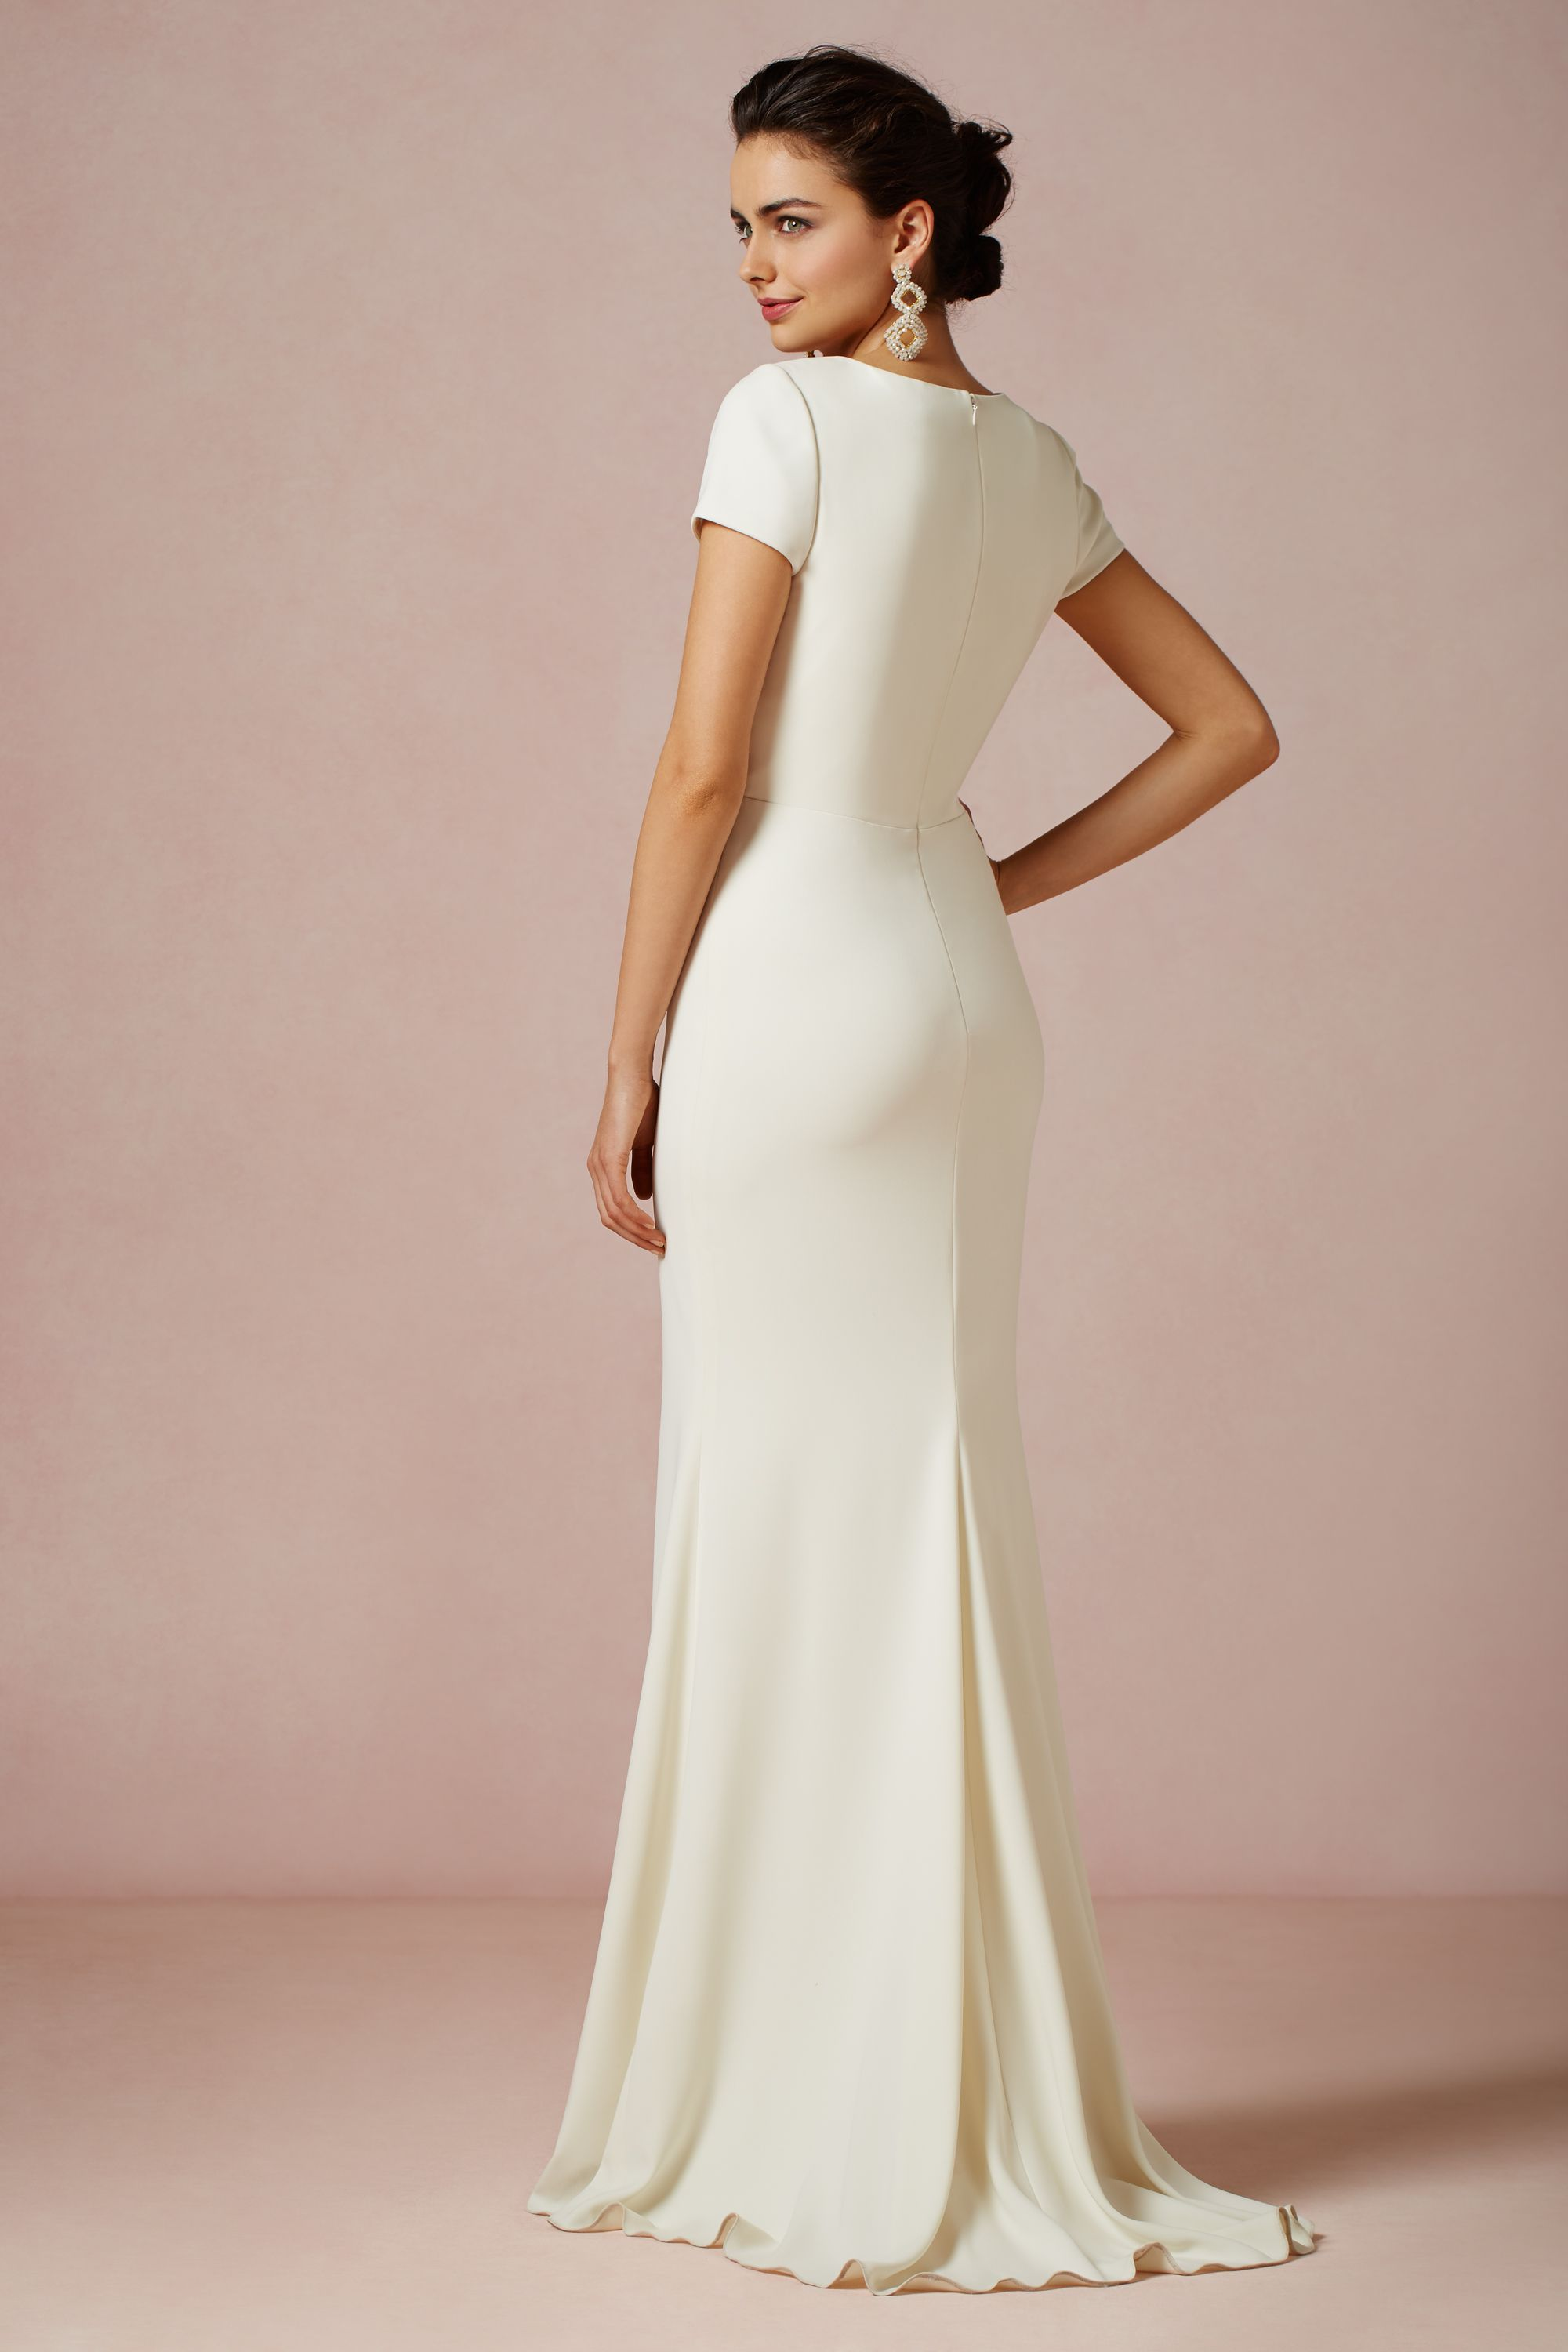 isis gown macy's wedding dresses Badgley Mischka ivory Isis Gown BHLDN